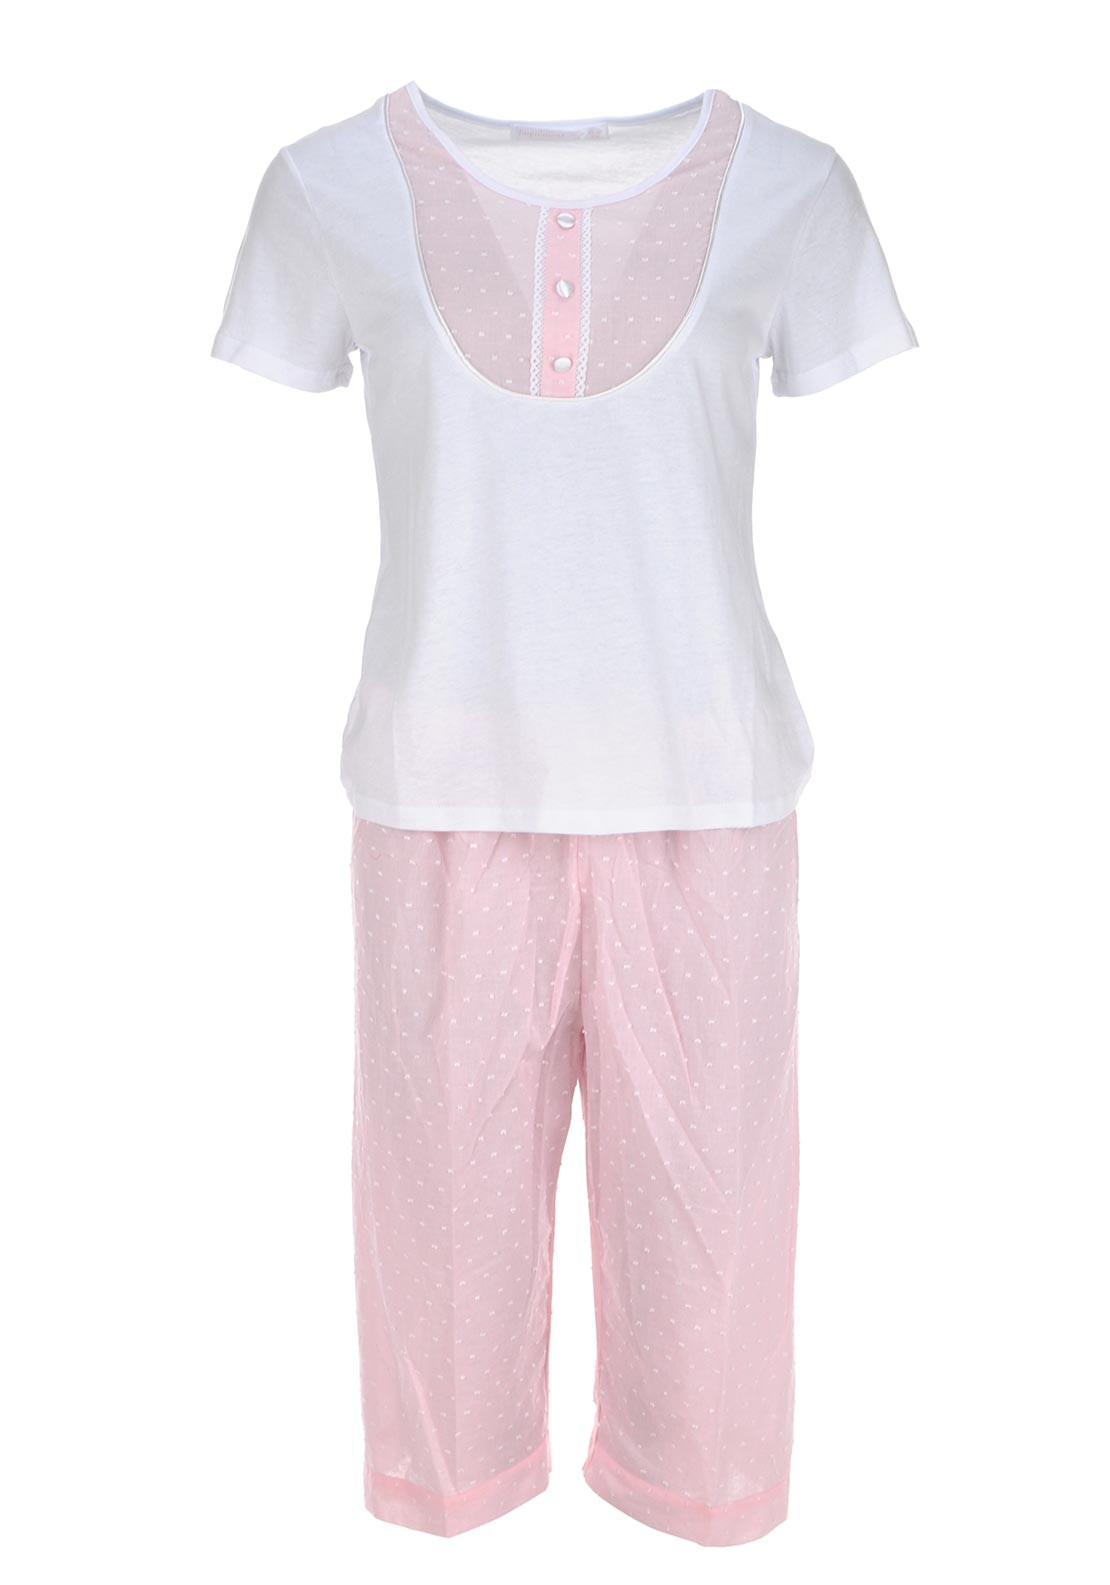 Inspirations Button Detail Pyjama Set, Pink and White